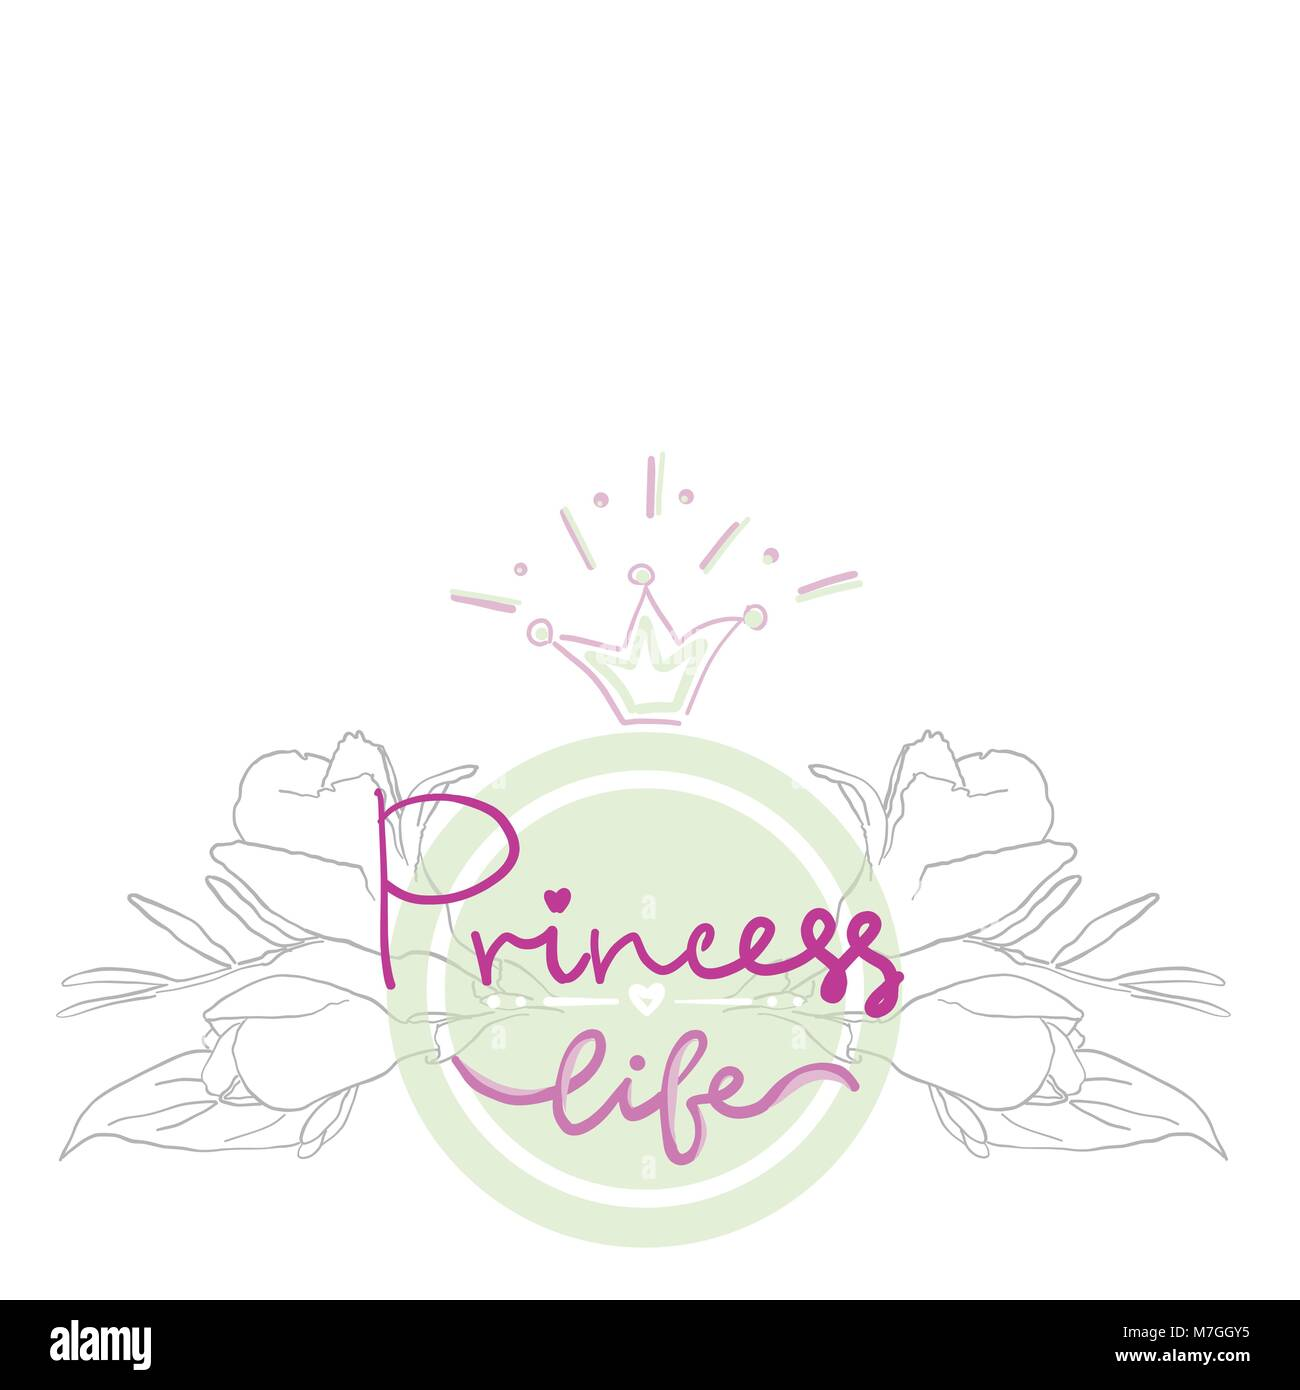 Party Bridal Shower Hen Birthday Card Color Girl Projekt Logo Print T Shirt Lettering Princess Life With Floral Flowers Ornament In Circle